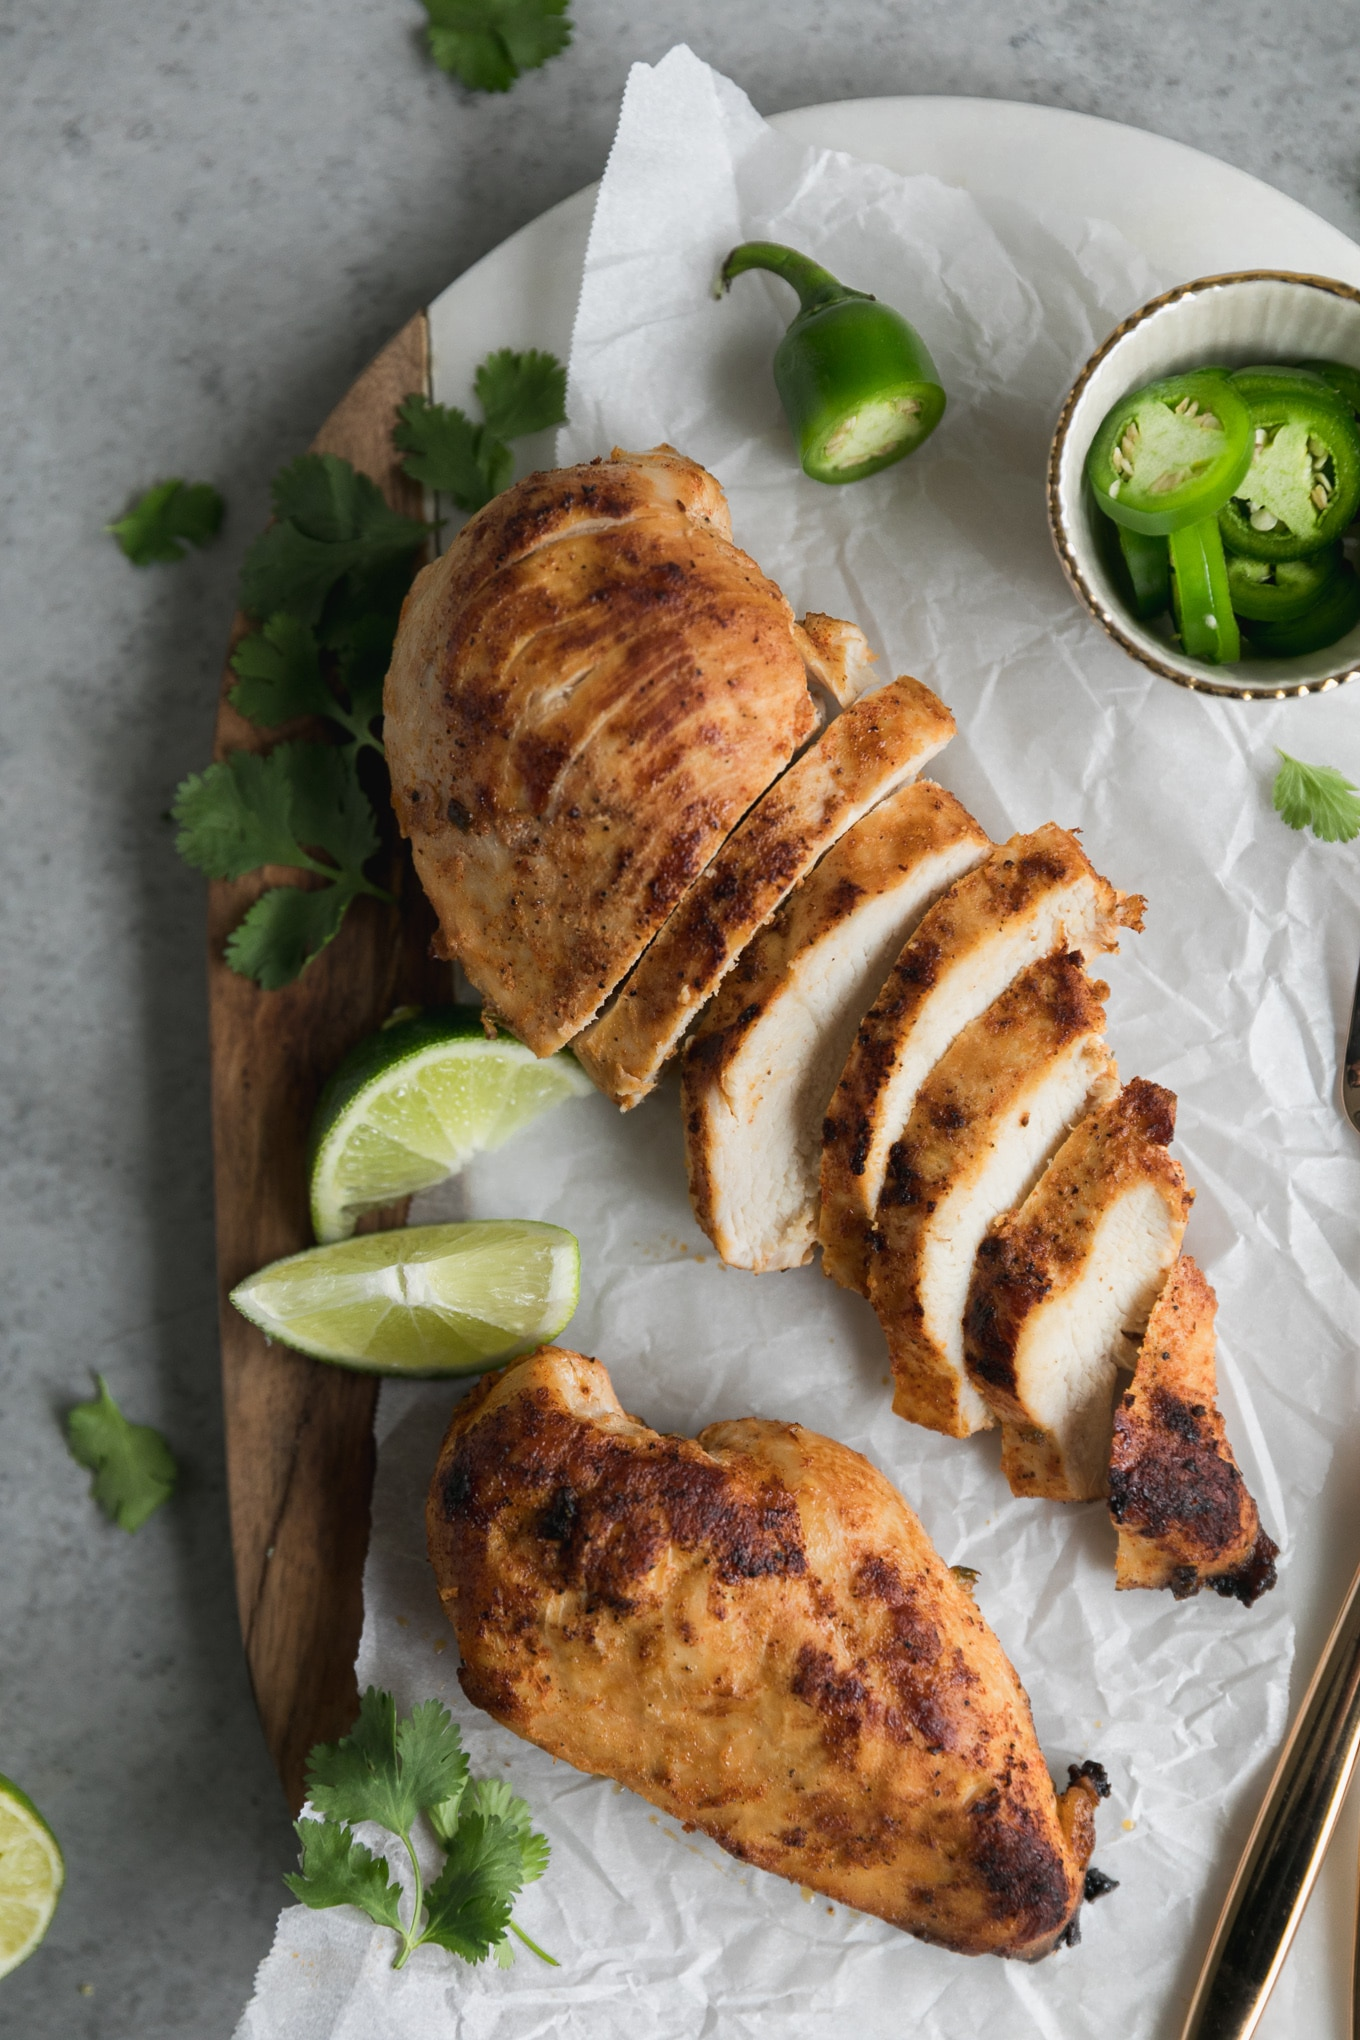 Overhead shot of two chicken breasts, one sliced and one whole, with lime wedges, sliced jalapeños, and cilantro off to the side